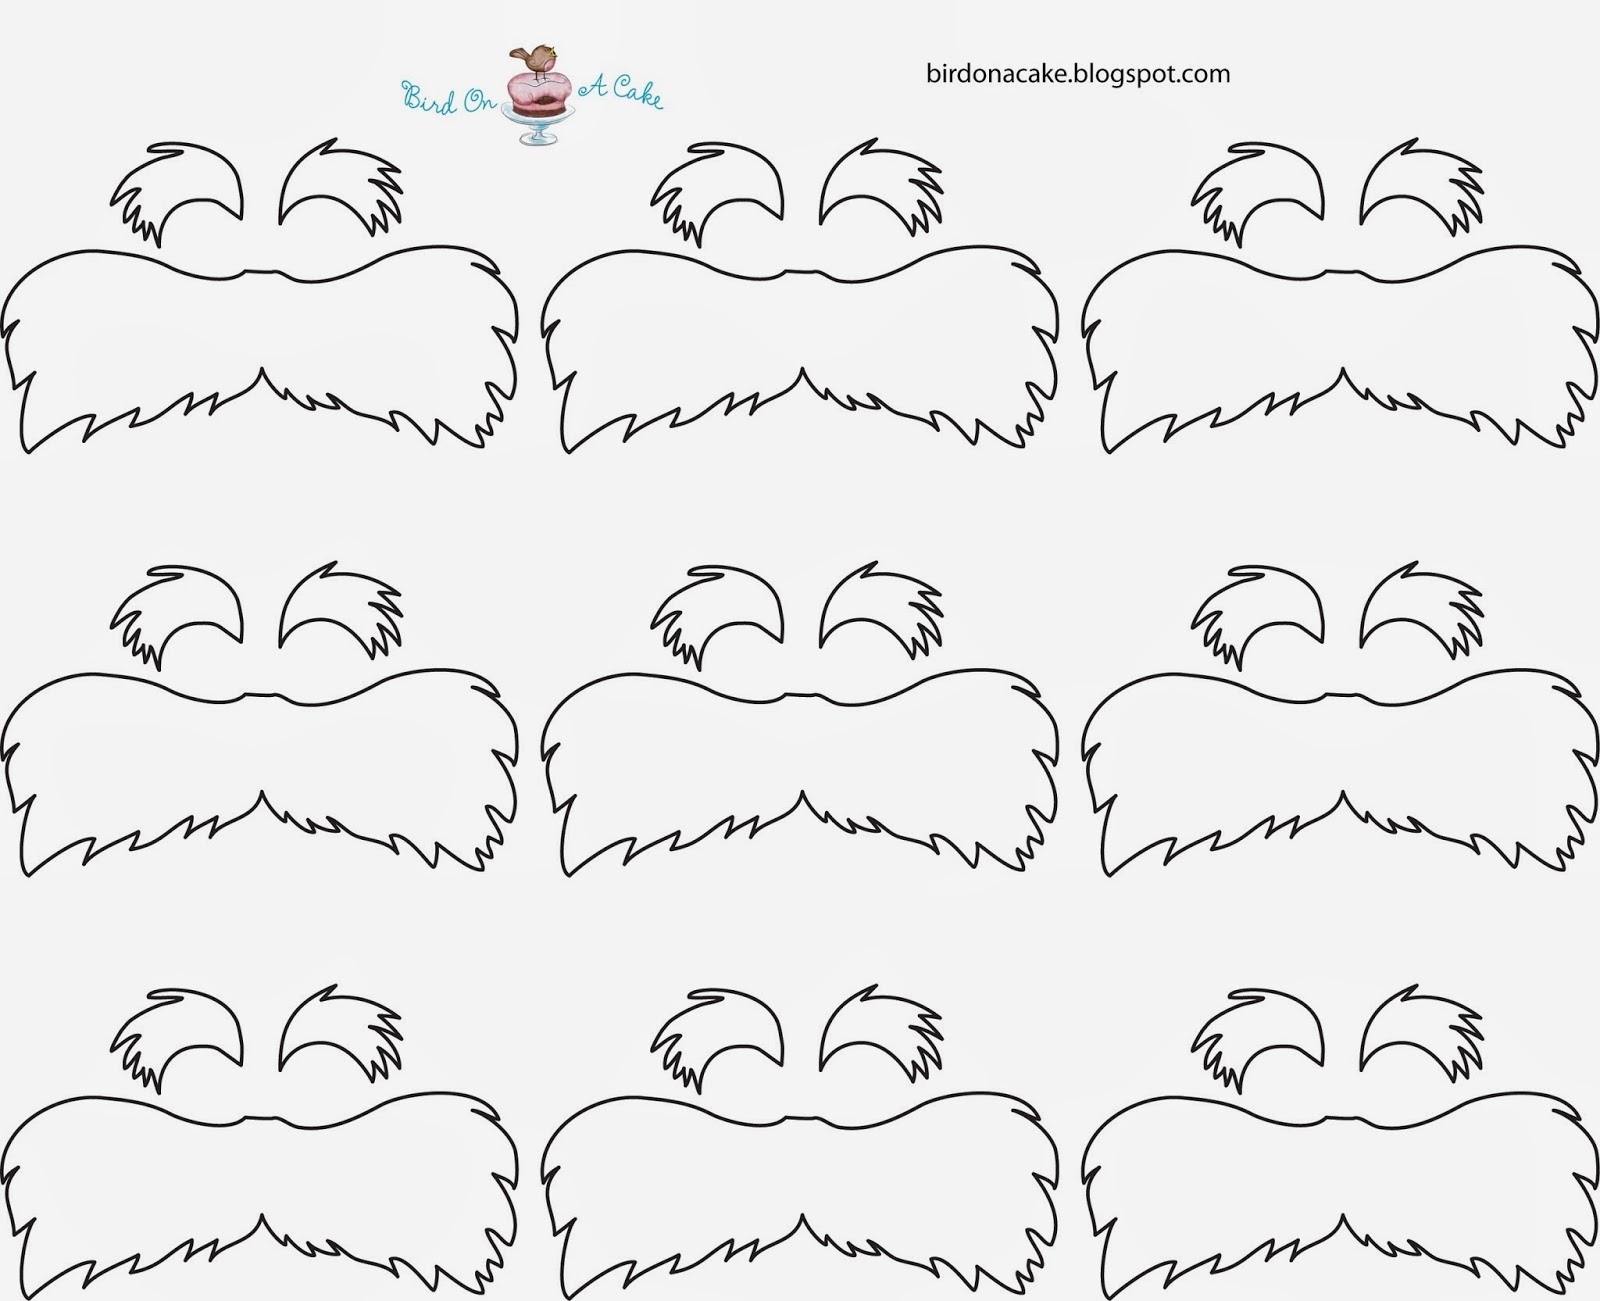 photo about Lorax Printable titled Dr Seuss Lorax Coloring Webpages. the lorax coloring webpages